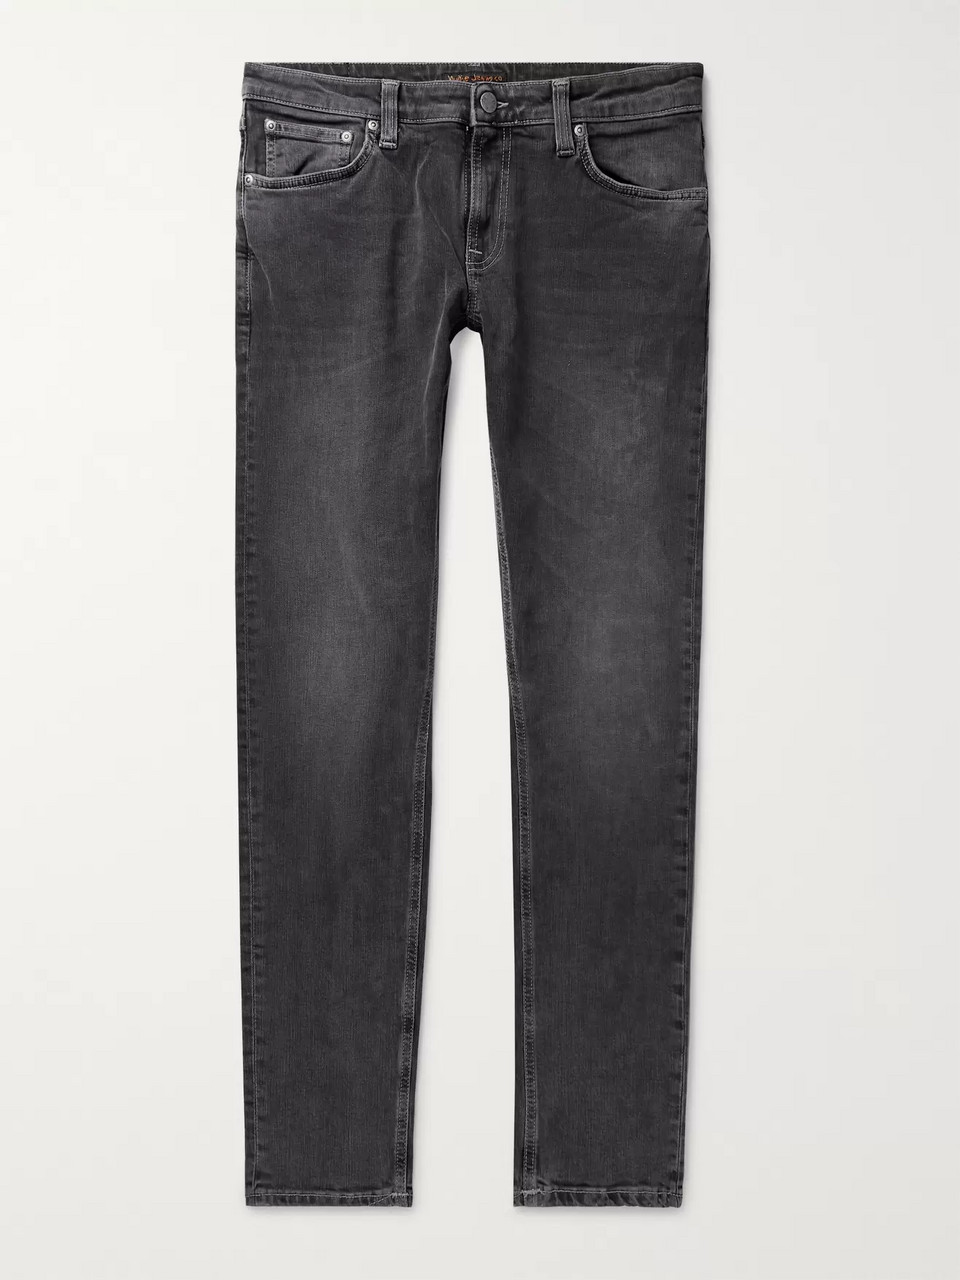 Nudie Jeans Skinny Lin Organic Stretch-Denim Jeans